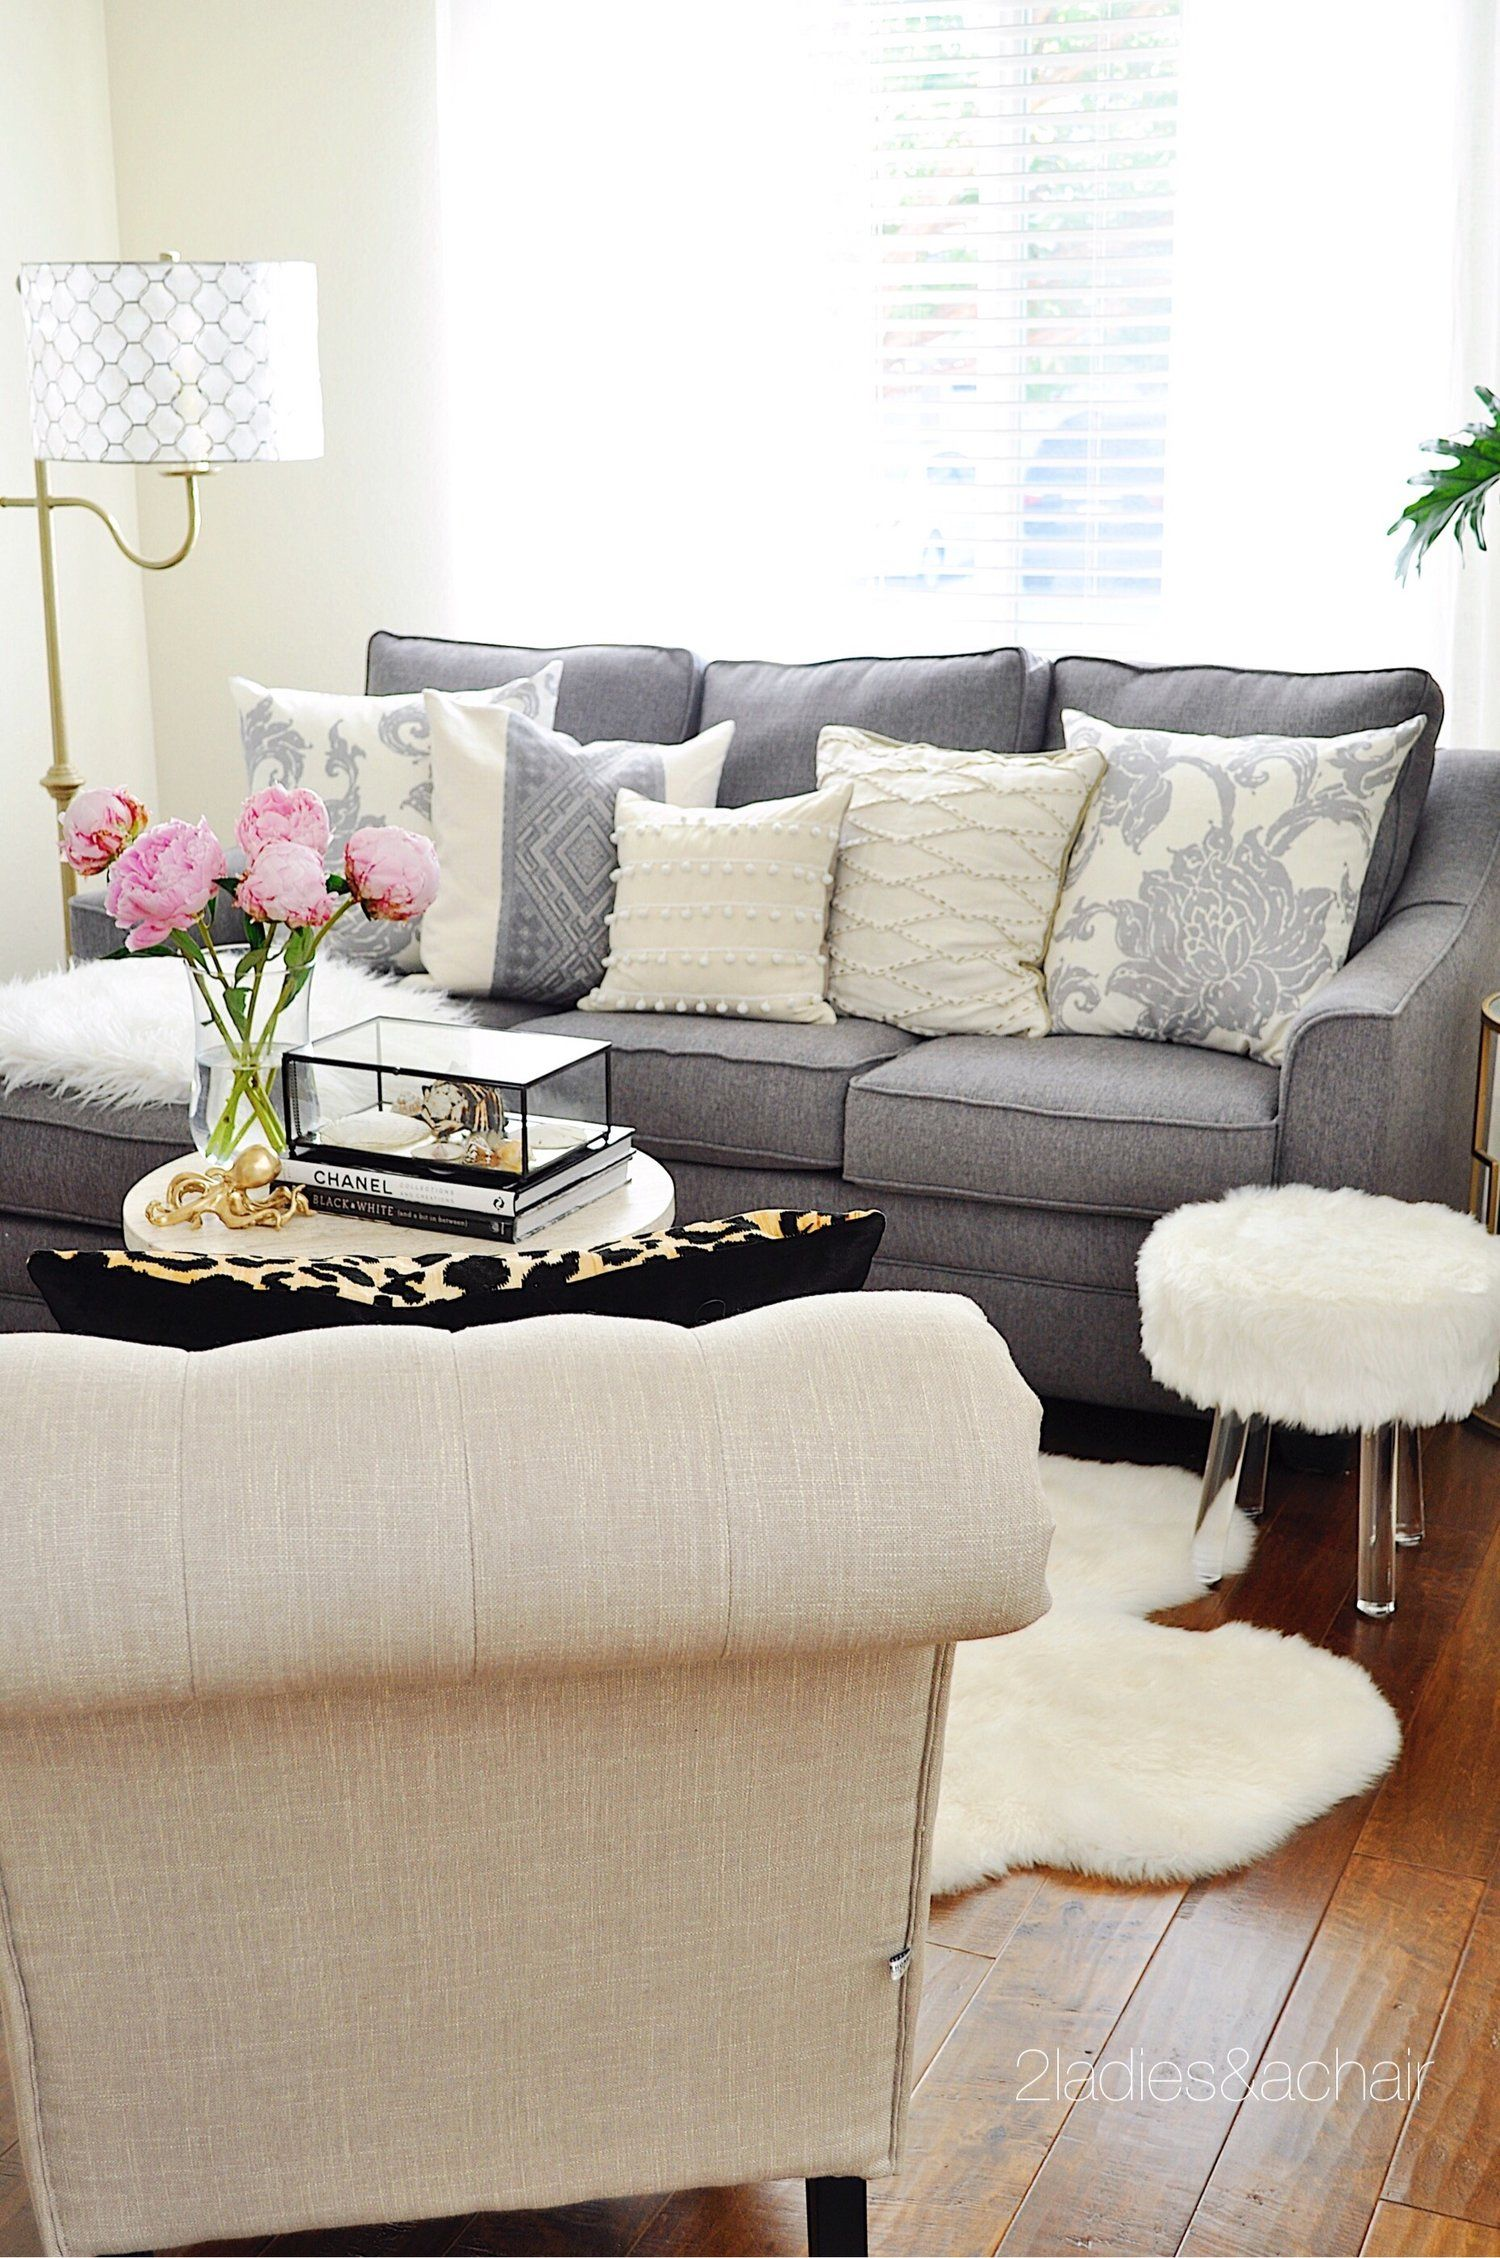 Jun 13 Summer Home Tour: Adding Color to Your Home | Grey couches ...